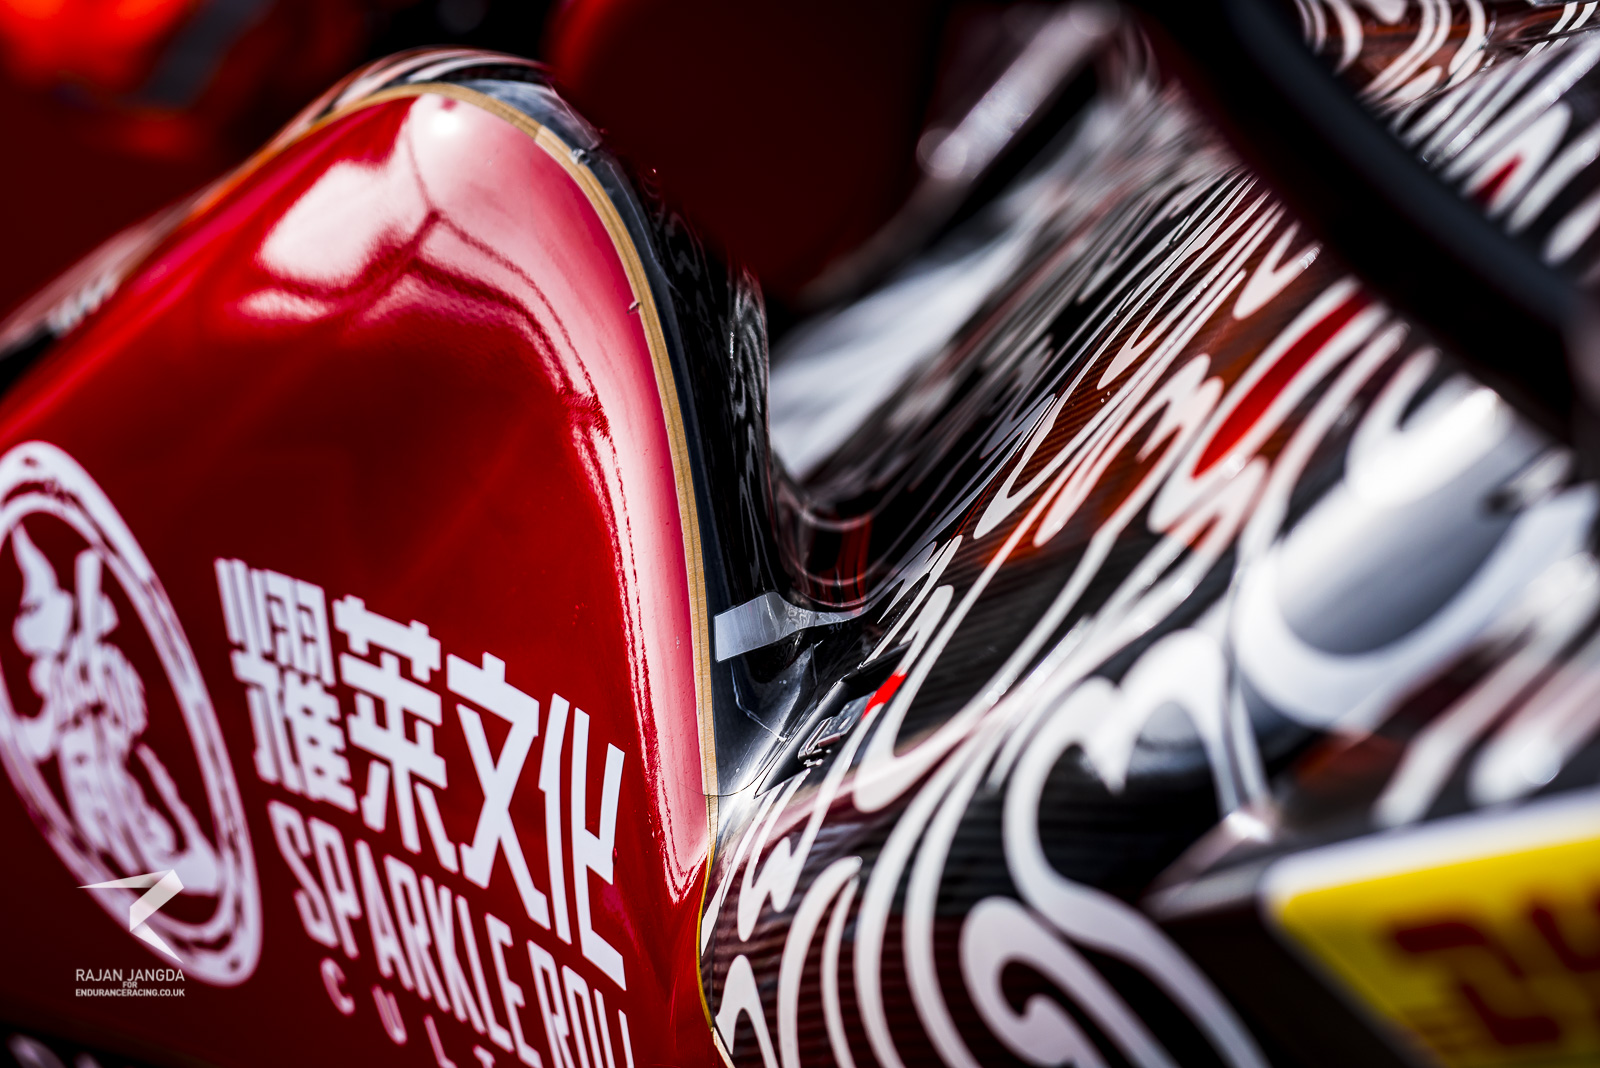 The most eye-catching detail of the Oreca